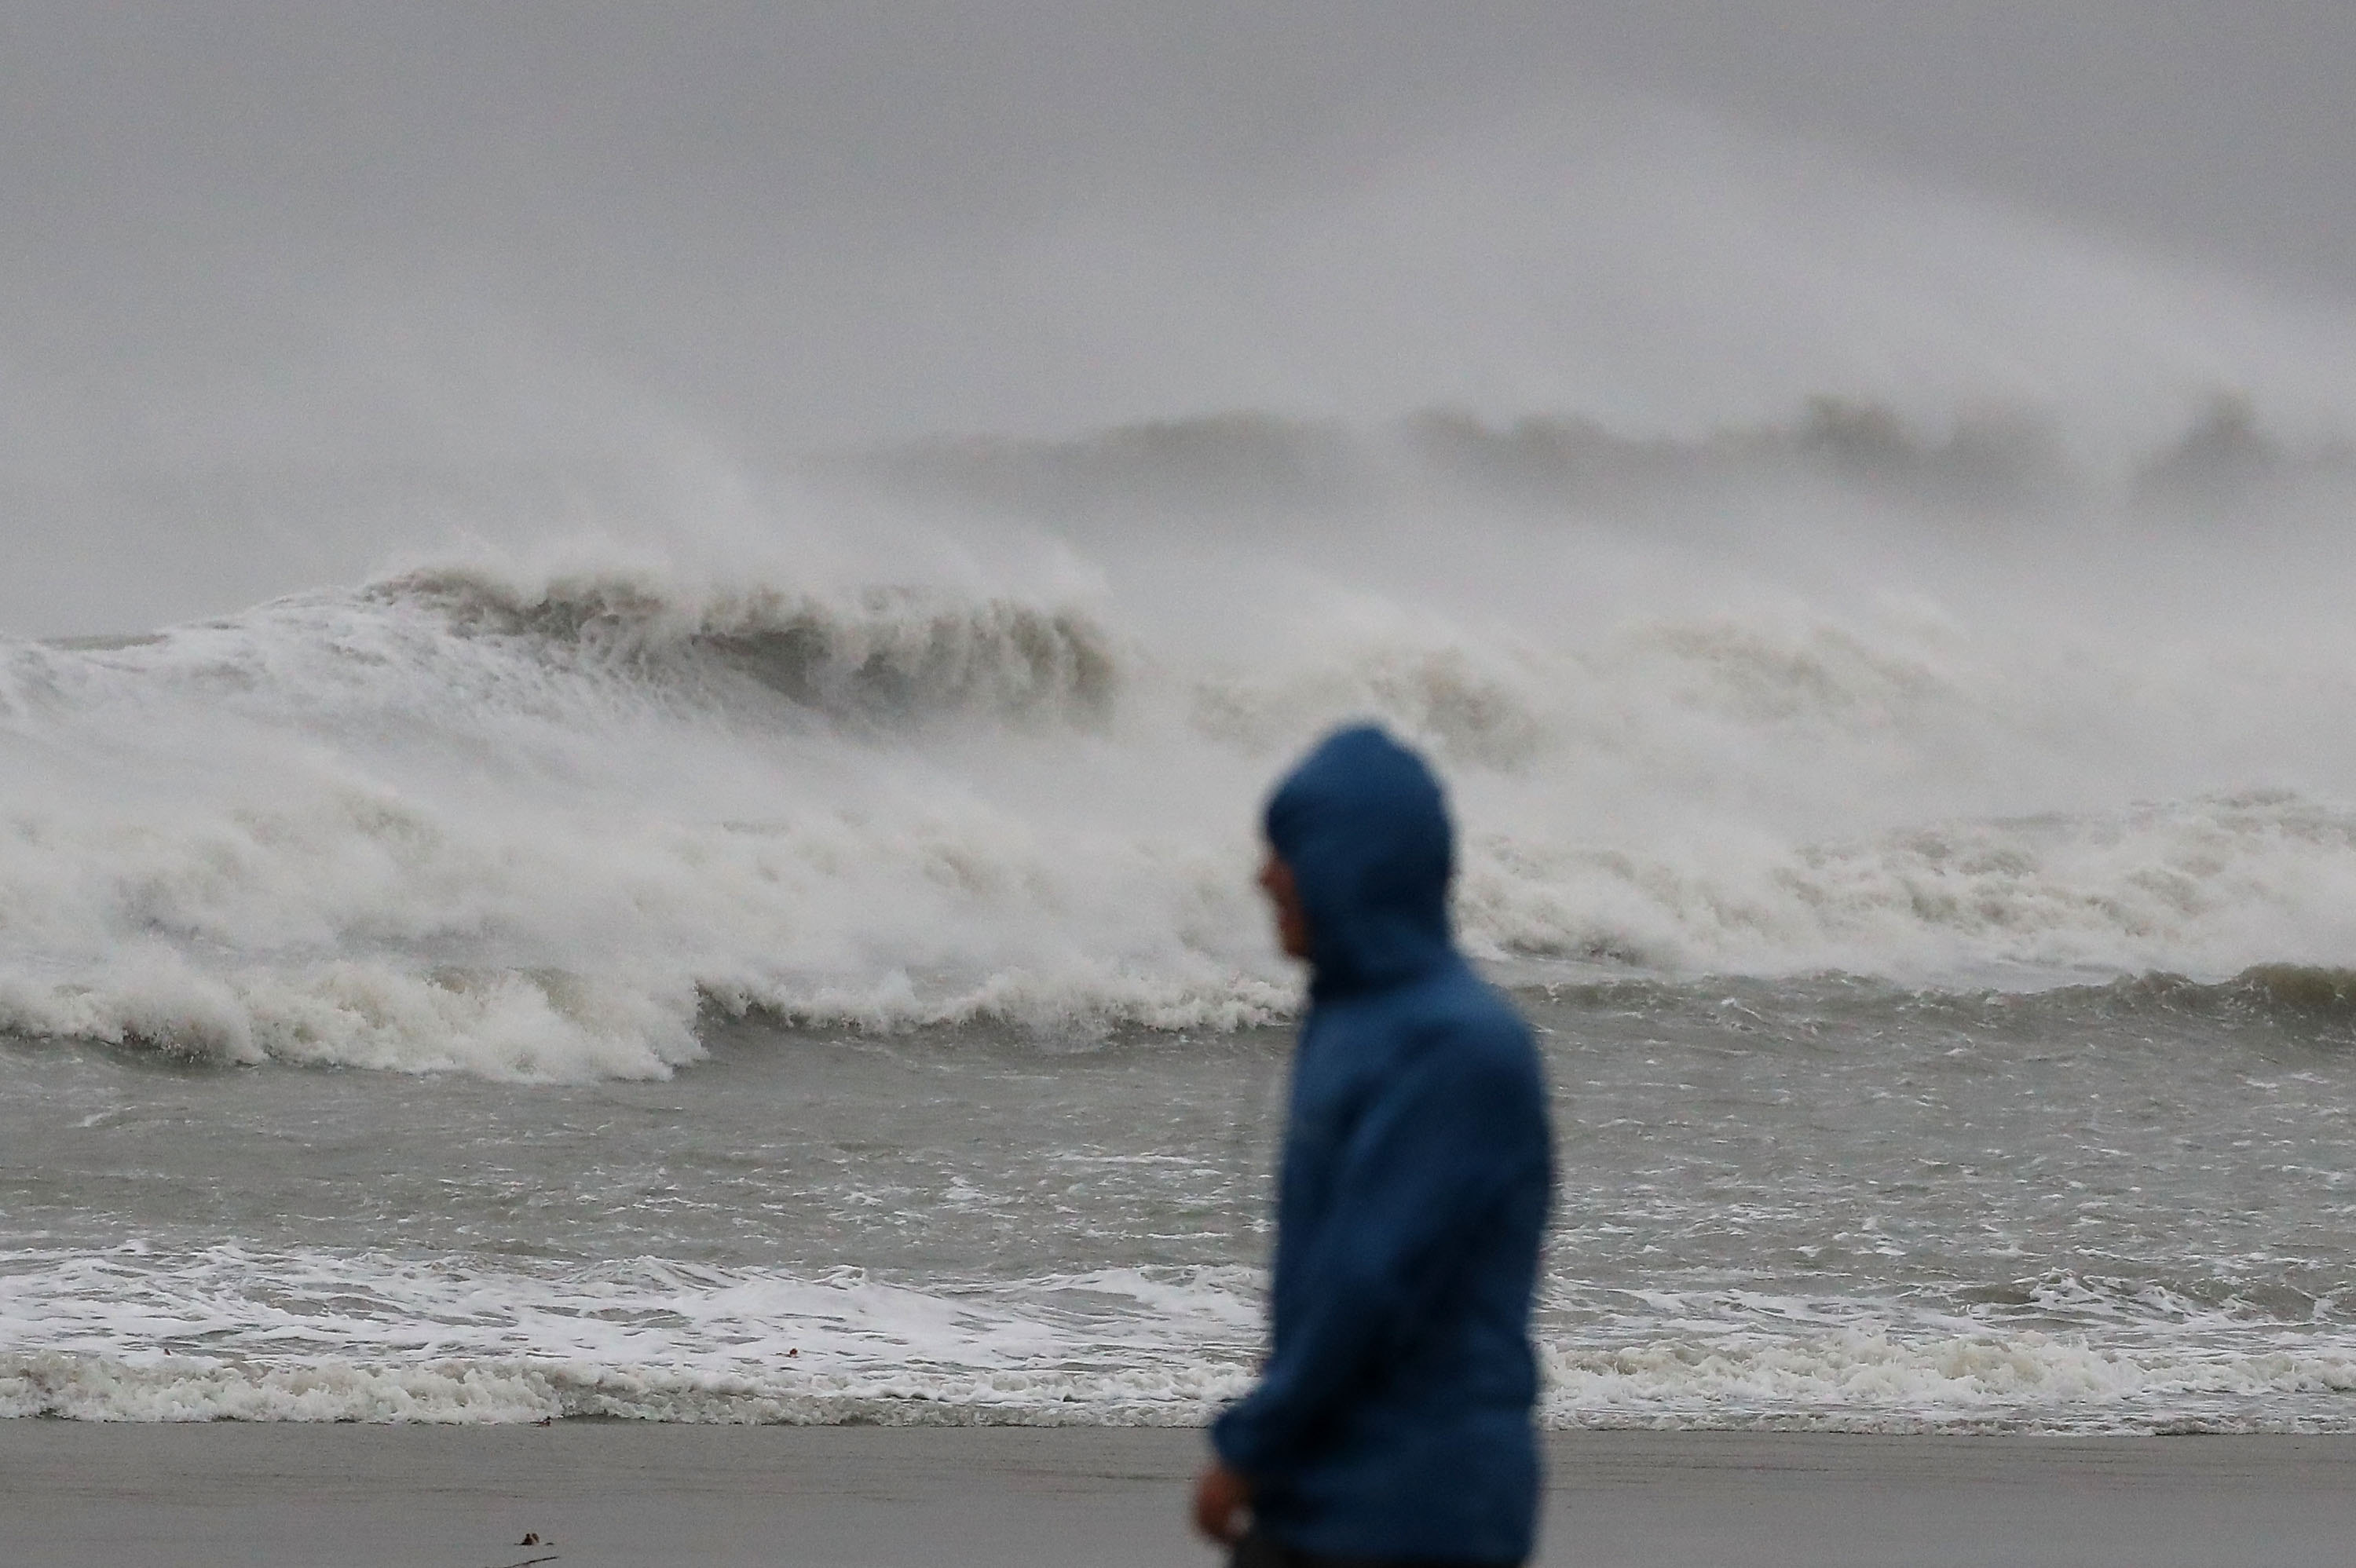 COCOA BEACH, FL - OCTOBER 07: A man walks past heavy surf caused by Hurricane Matthew, October 7, 2016 on Cocoa Beach, Florida. Hurricane Matthew passed by offshore as a catagory 3 hurricane bringing heavy winds and minor flooding. (Photo by Mark Wilson/Getty Images)